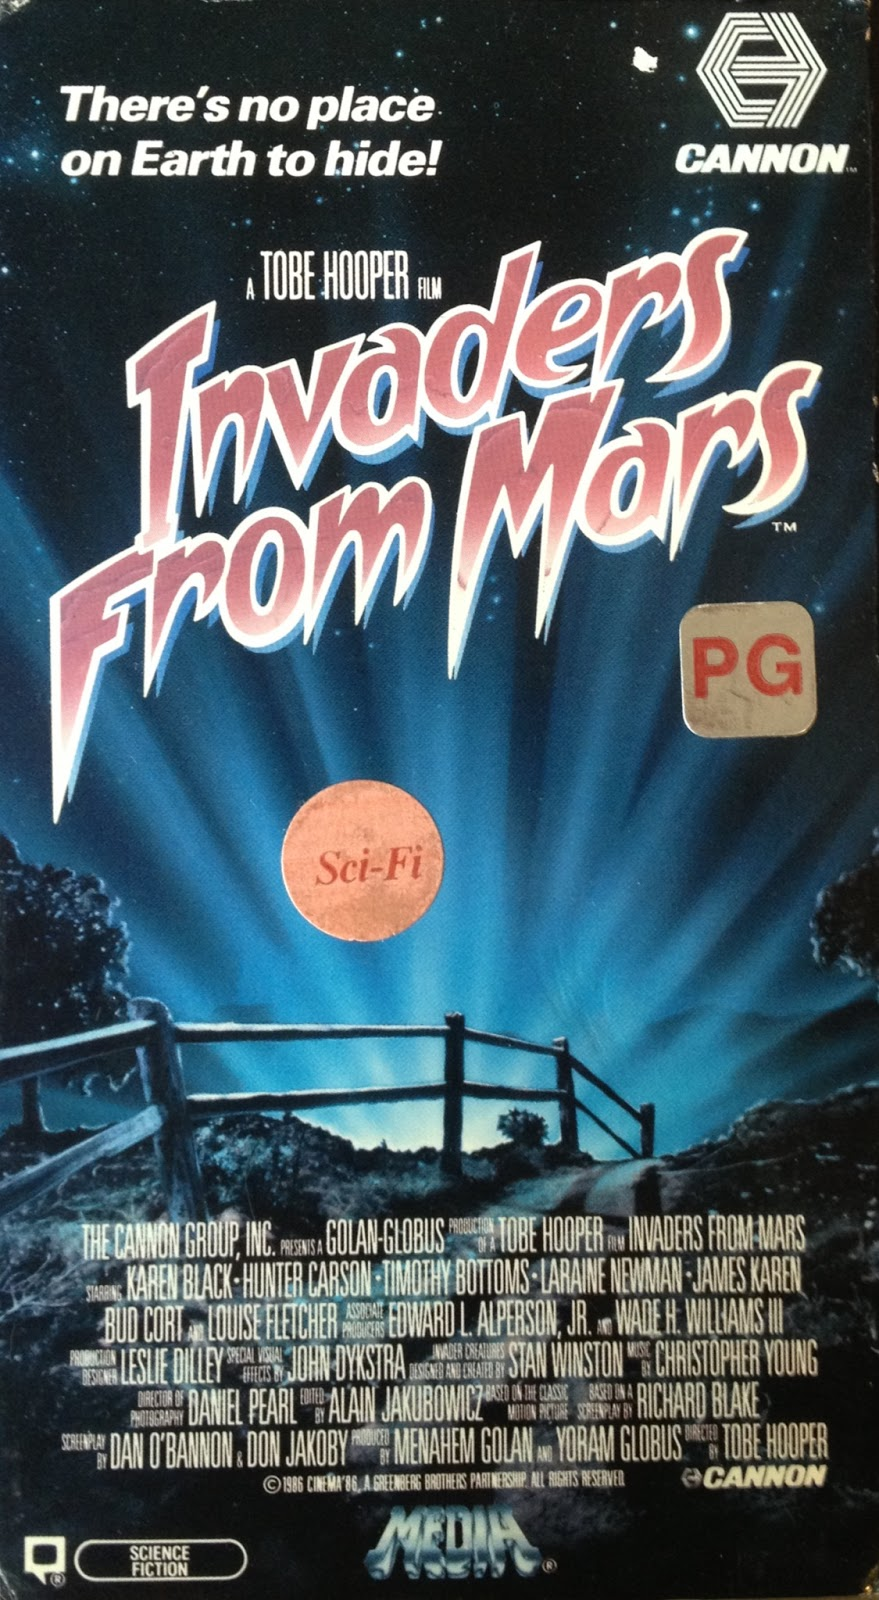 1986 Invaders From Mars Prob Film Brain Pics about space